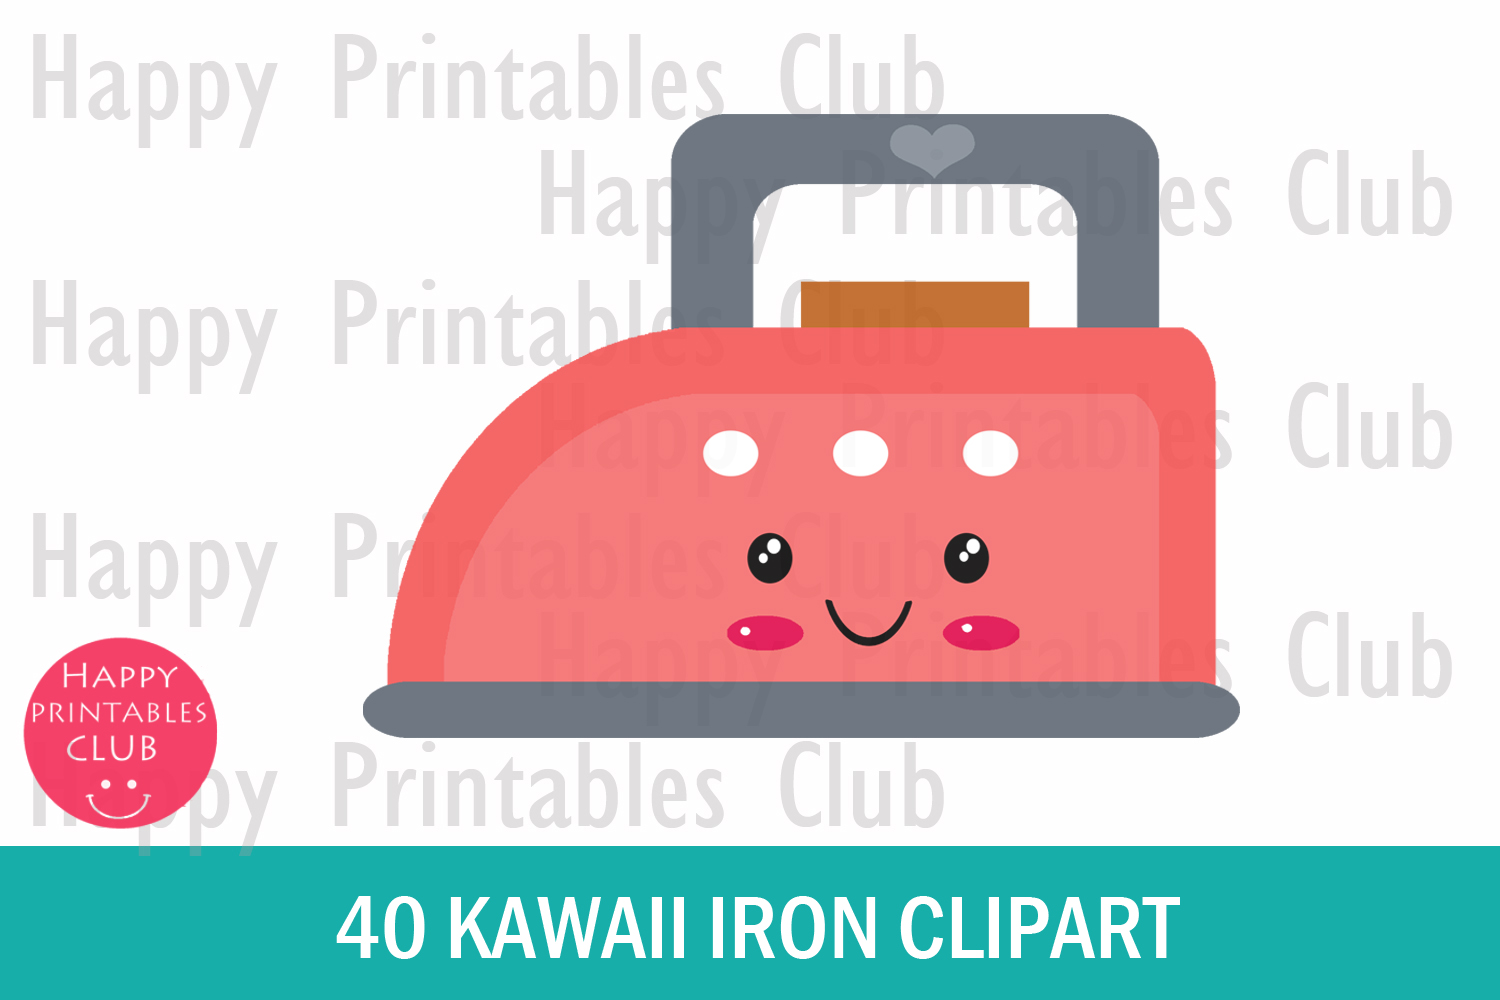 40 Kawaii Iron Clipart- Colorful Iron Clipart PNG Images example image 2